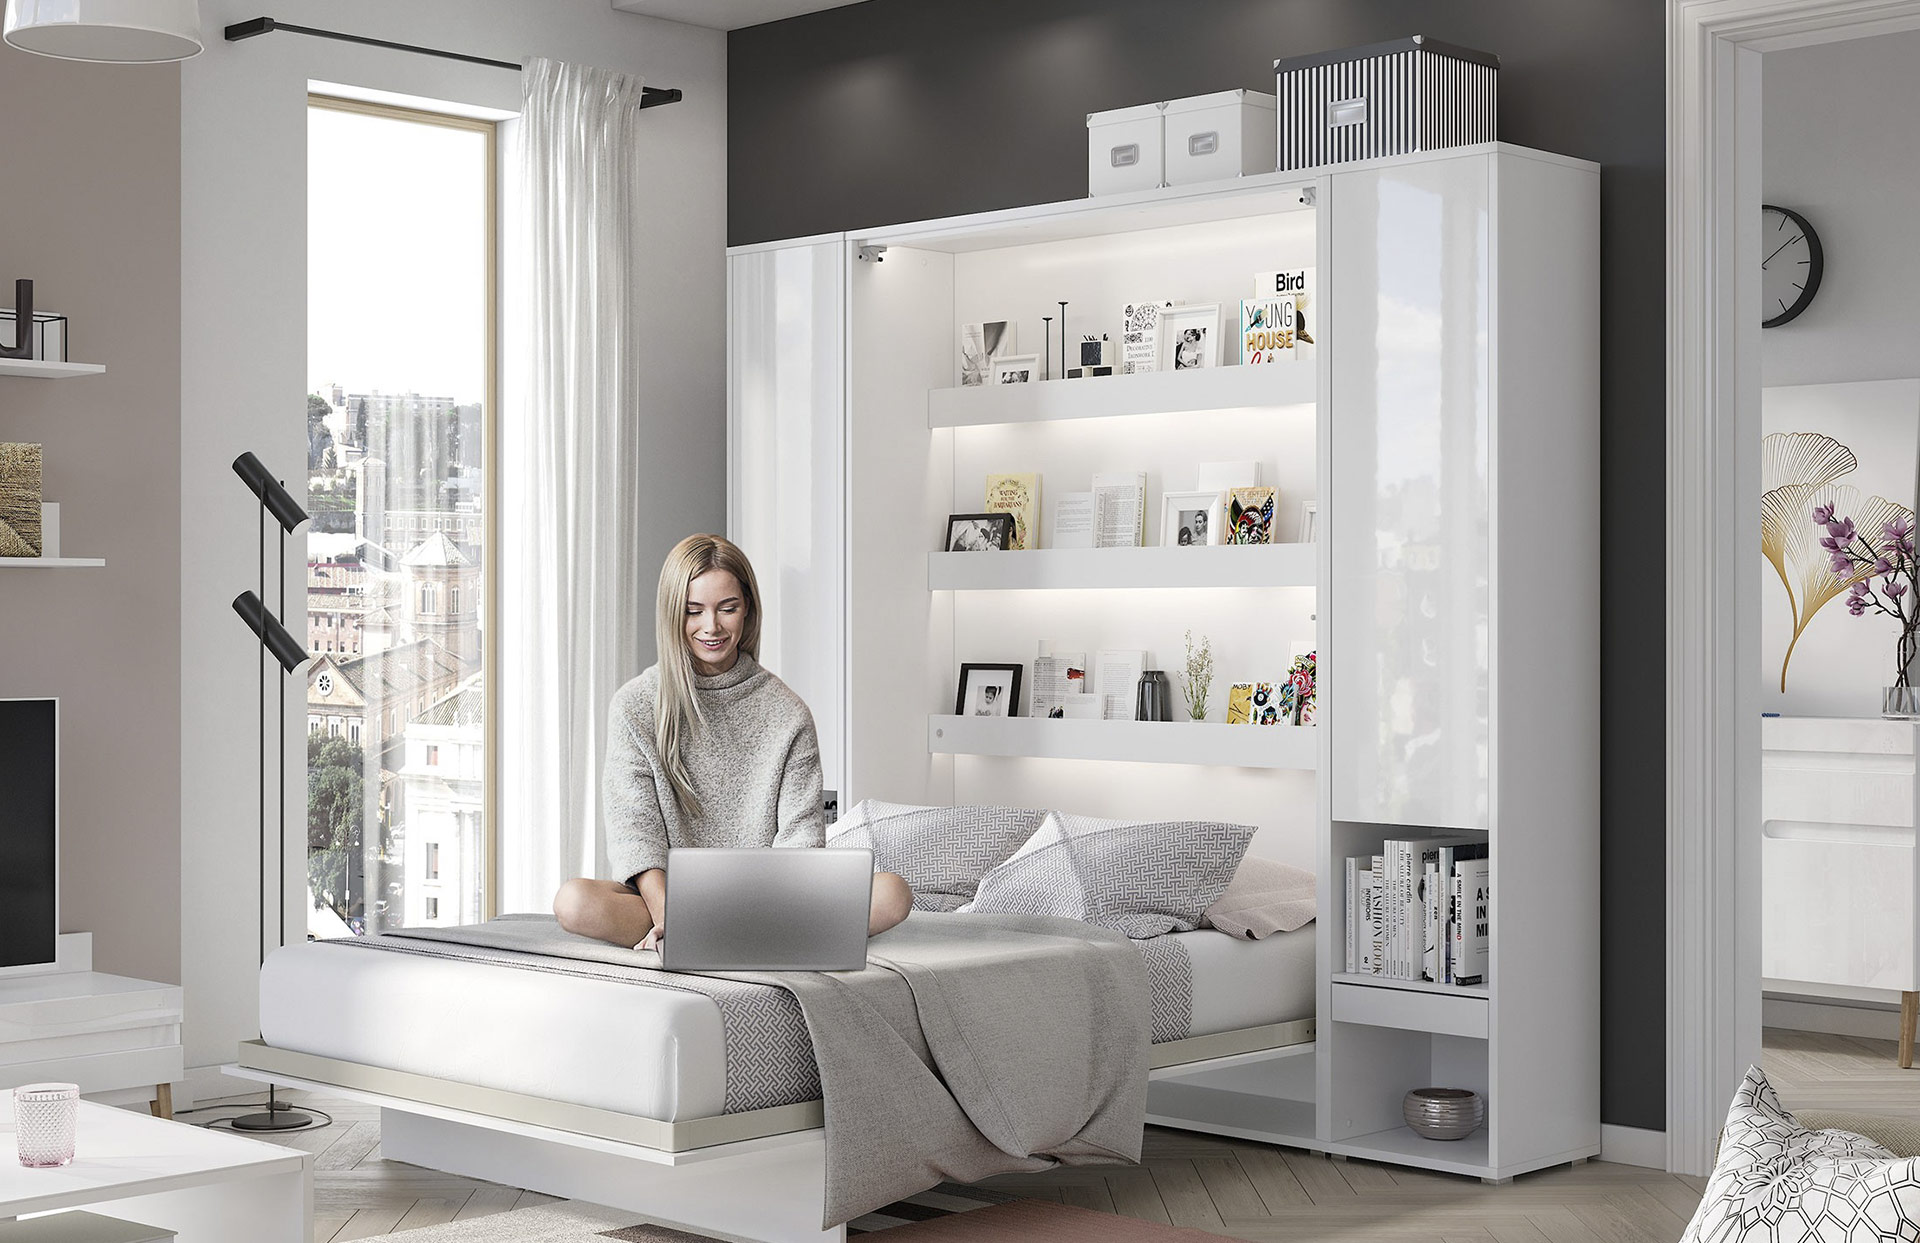 Murphy Bed – discovered of necessity. - get inspired by Smart Furniture online store